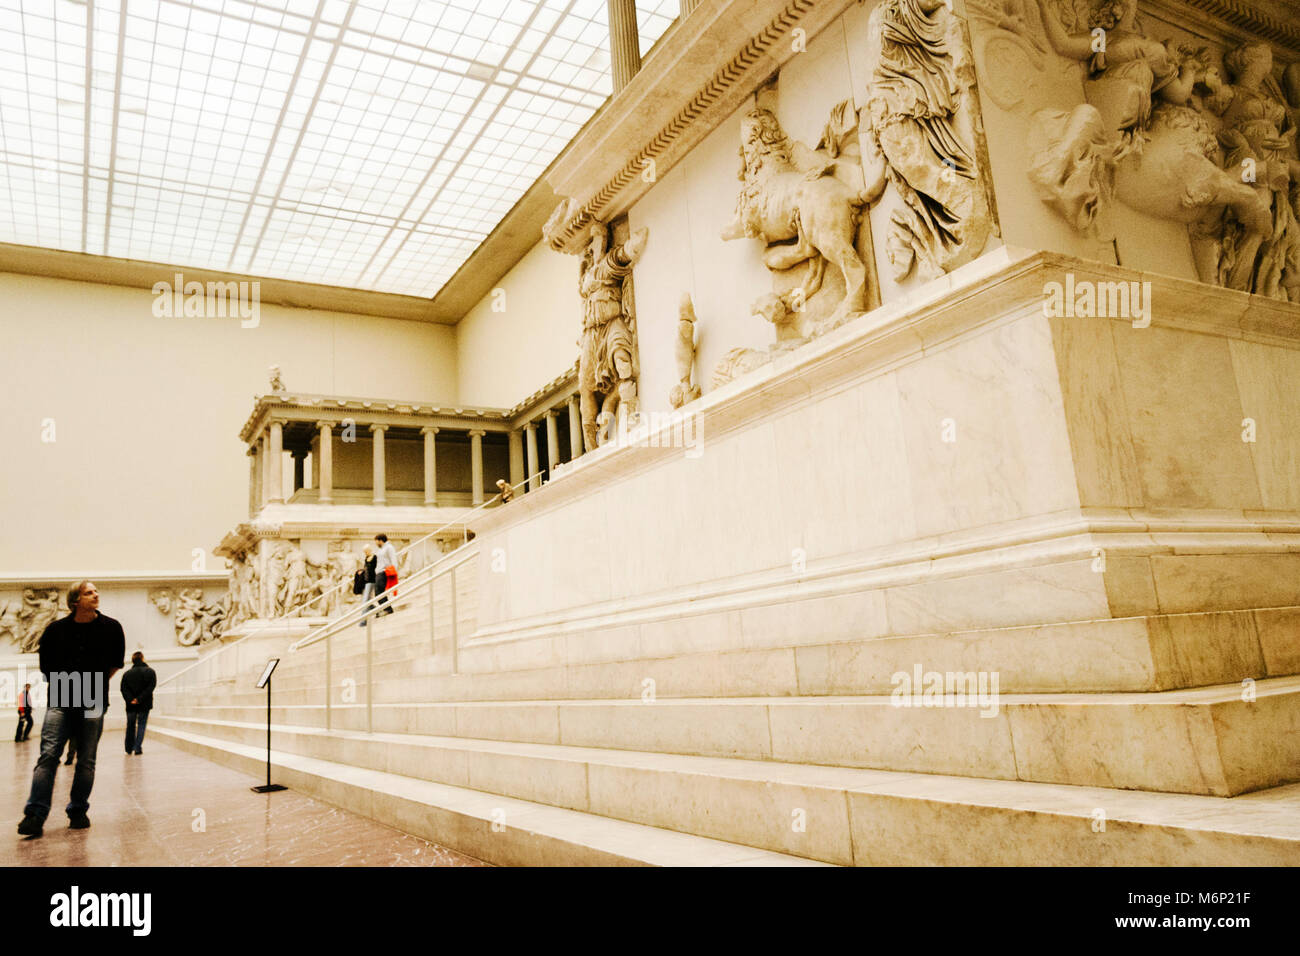 A visitor stands by the Pergamon Altar (2nd century BC) at the Pergamon Museum in the Museum Island, Berlin, Germany - Stock Image